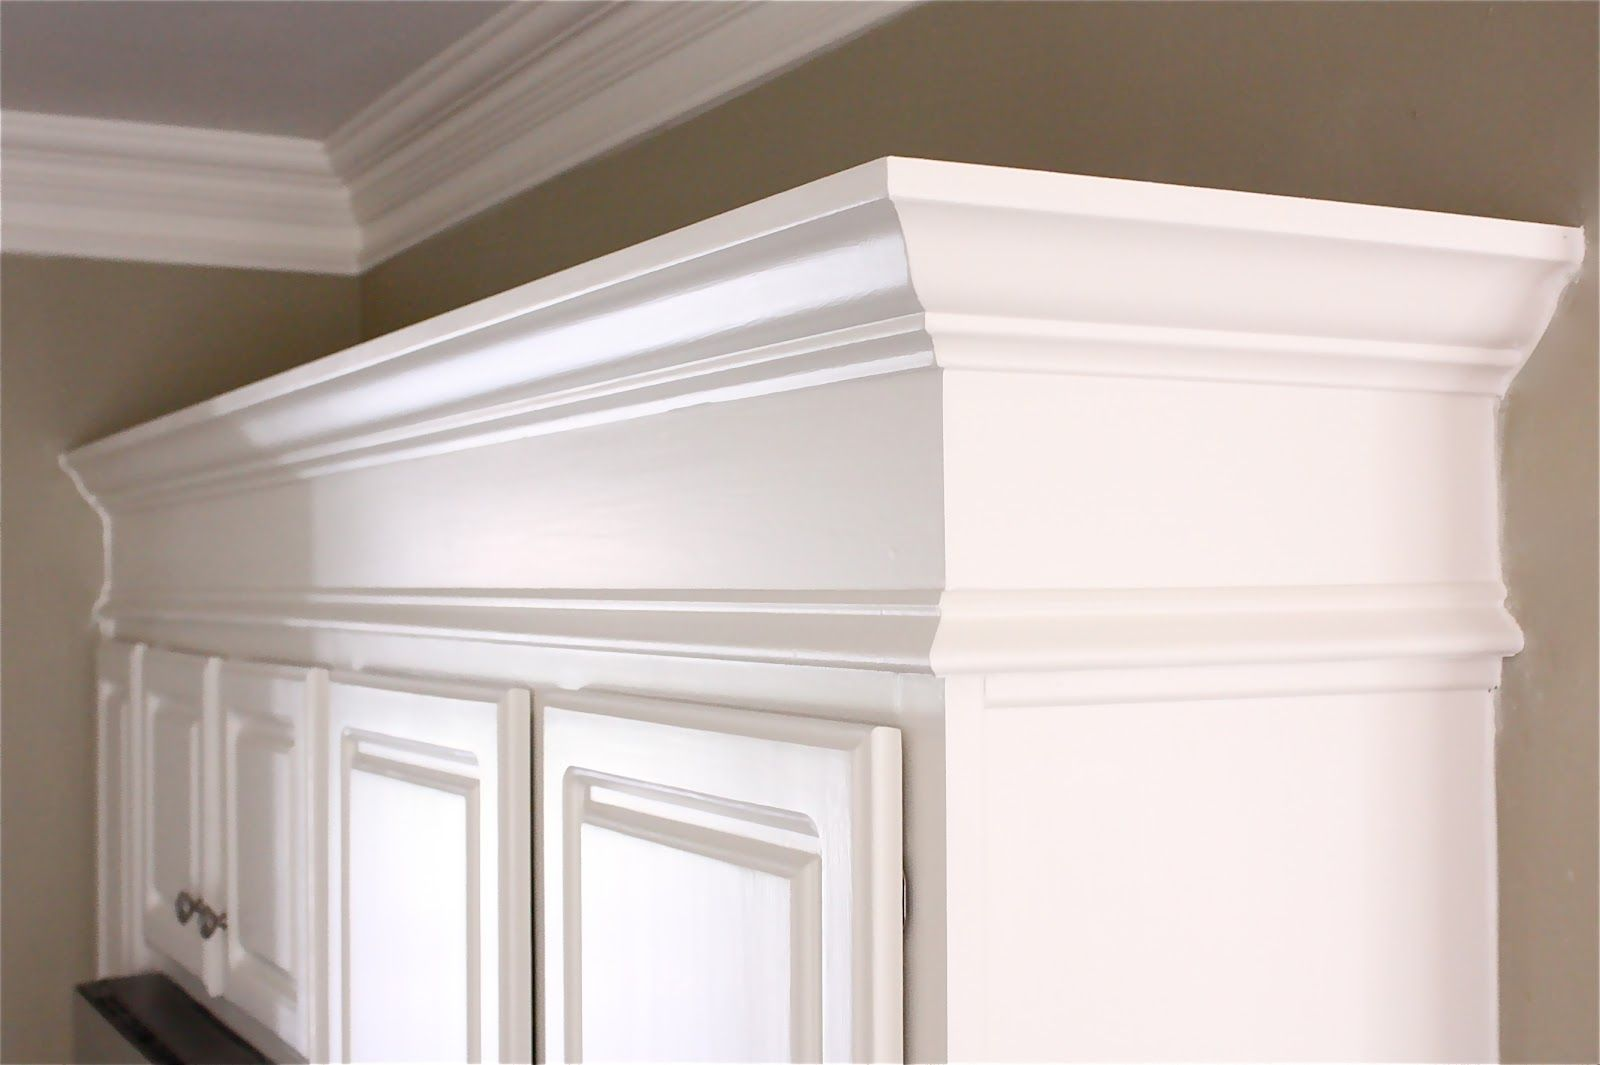 How To Paint Cabinets White | ... Cod: Making Cabinets Taller ...